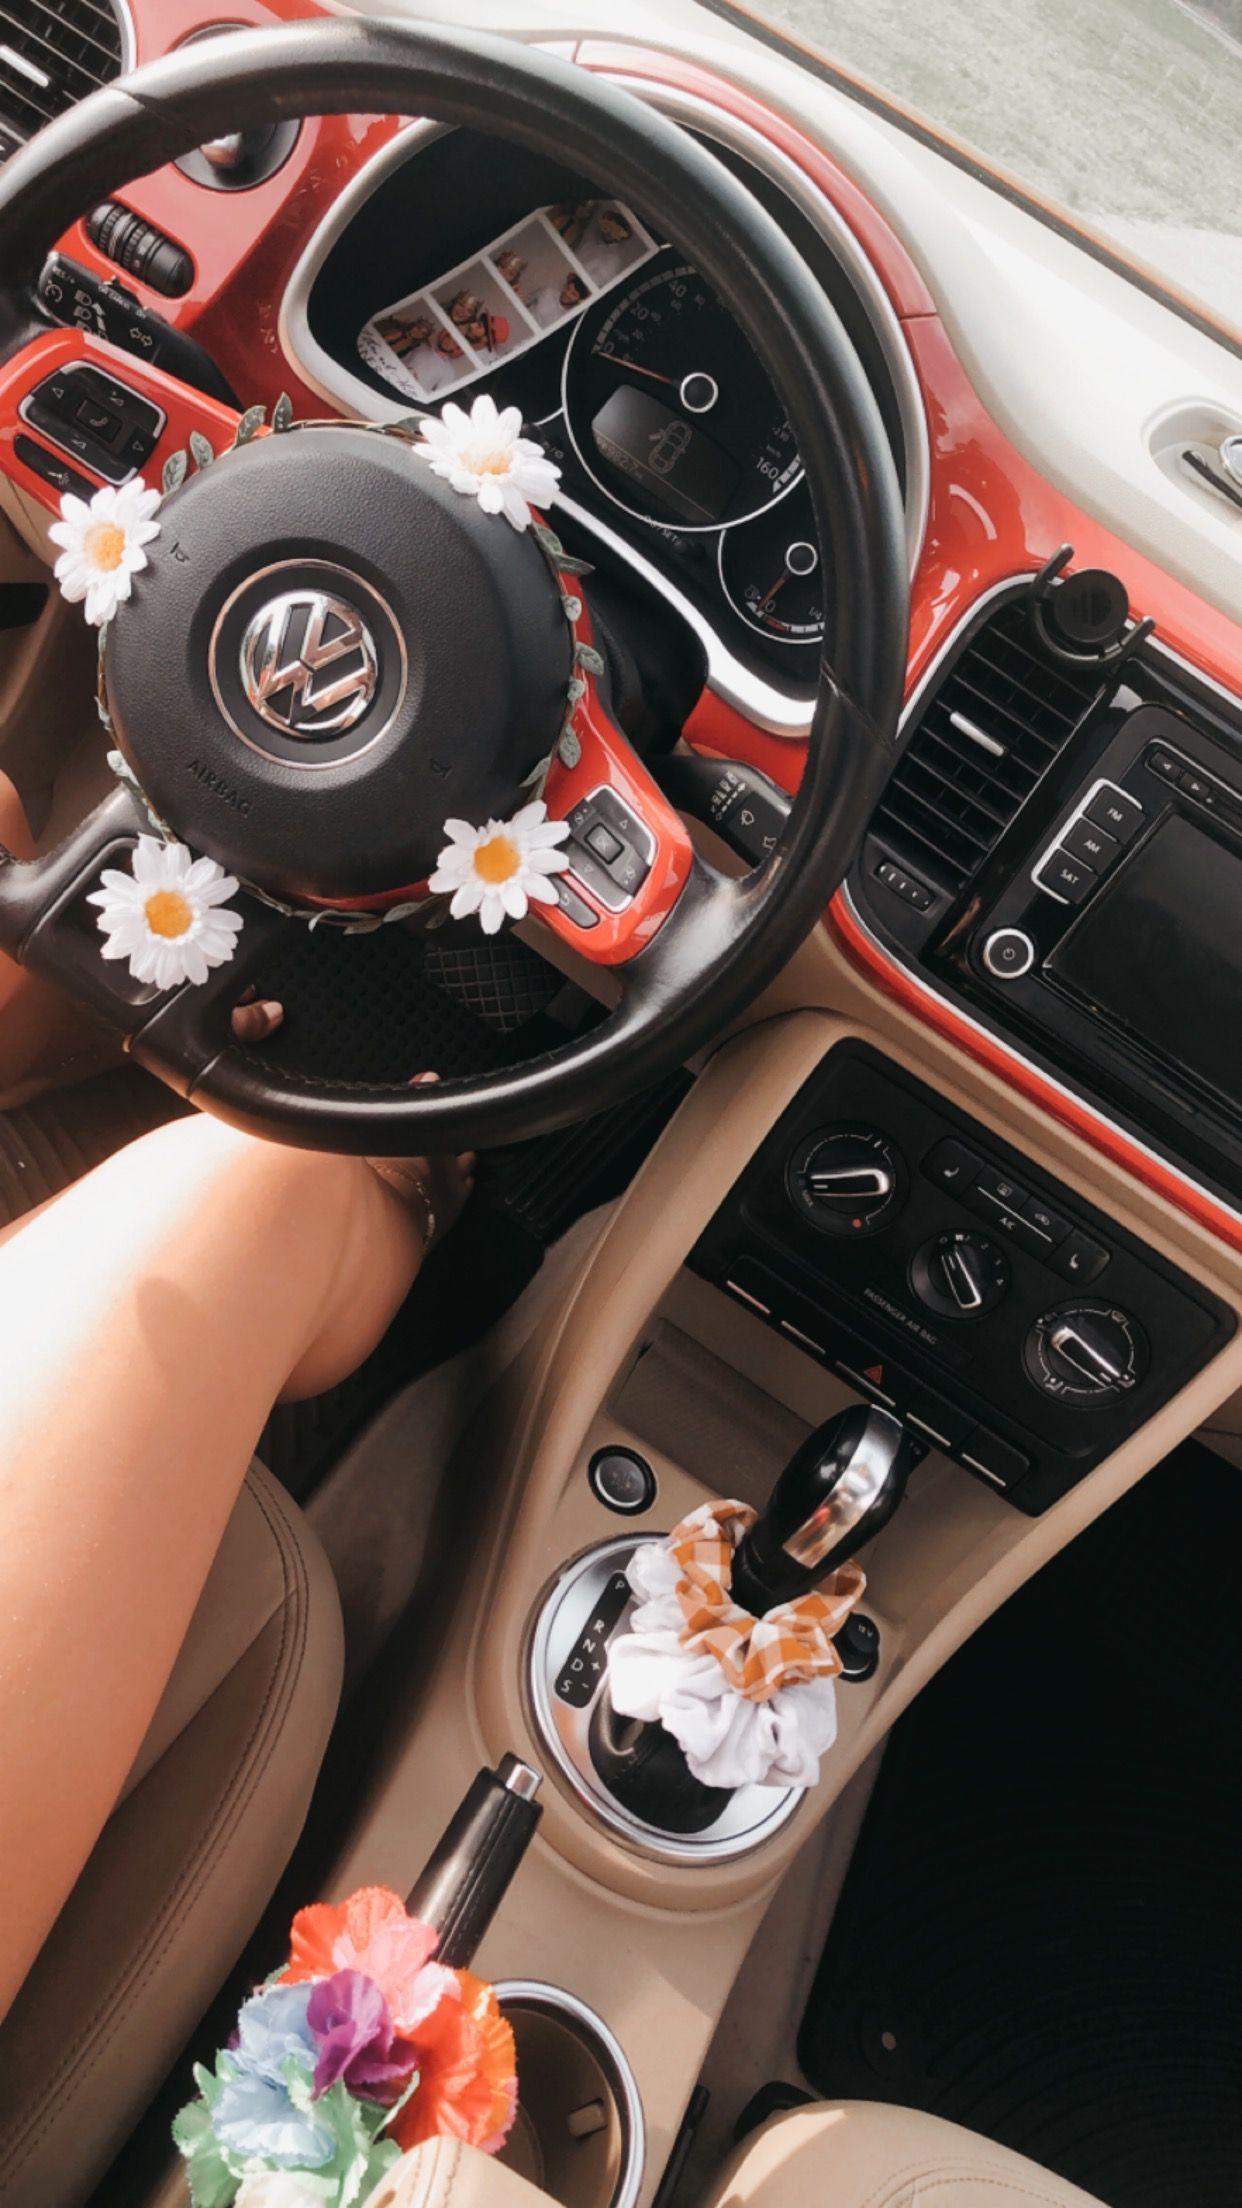 Pin By Evy Gallagher On Cute Car Accessories In 2020 New Car Accessories Girly Car Accessories Bling Car Accessories